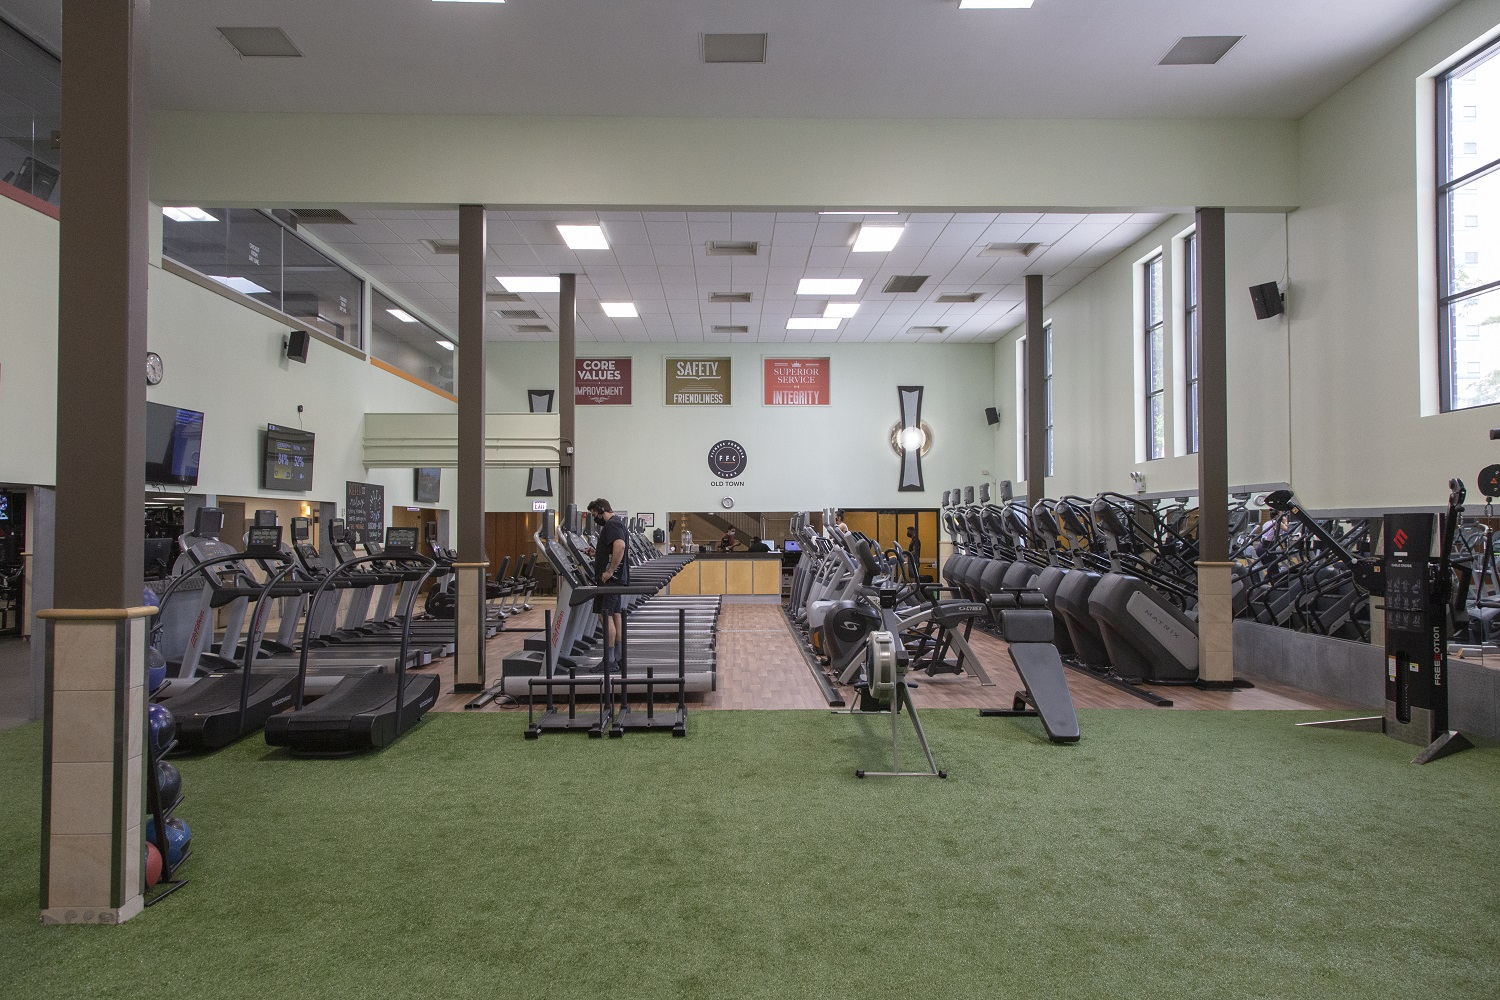 Photo of the FFC Old Town cardio machines,